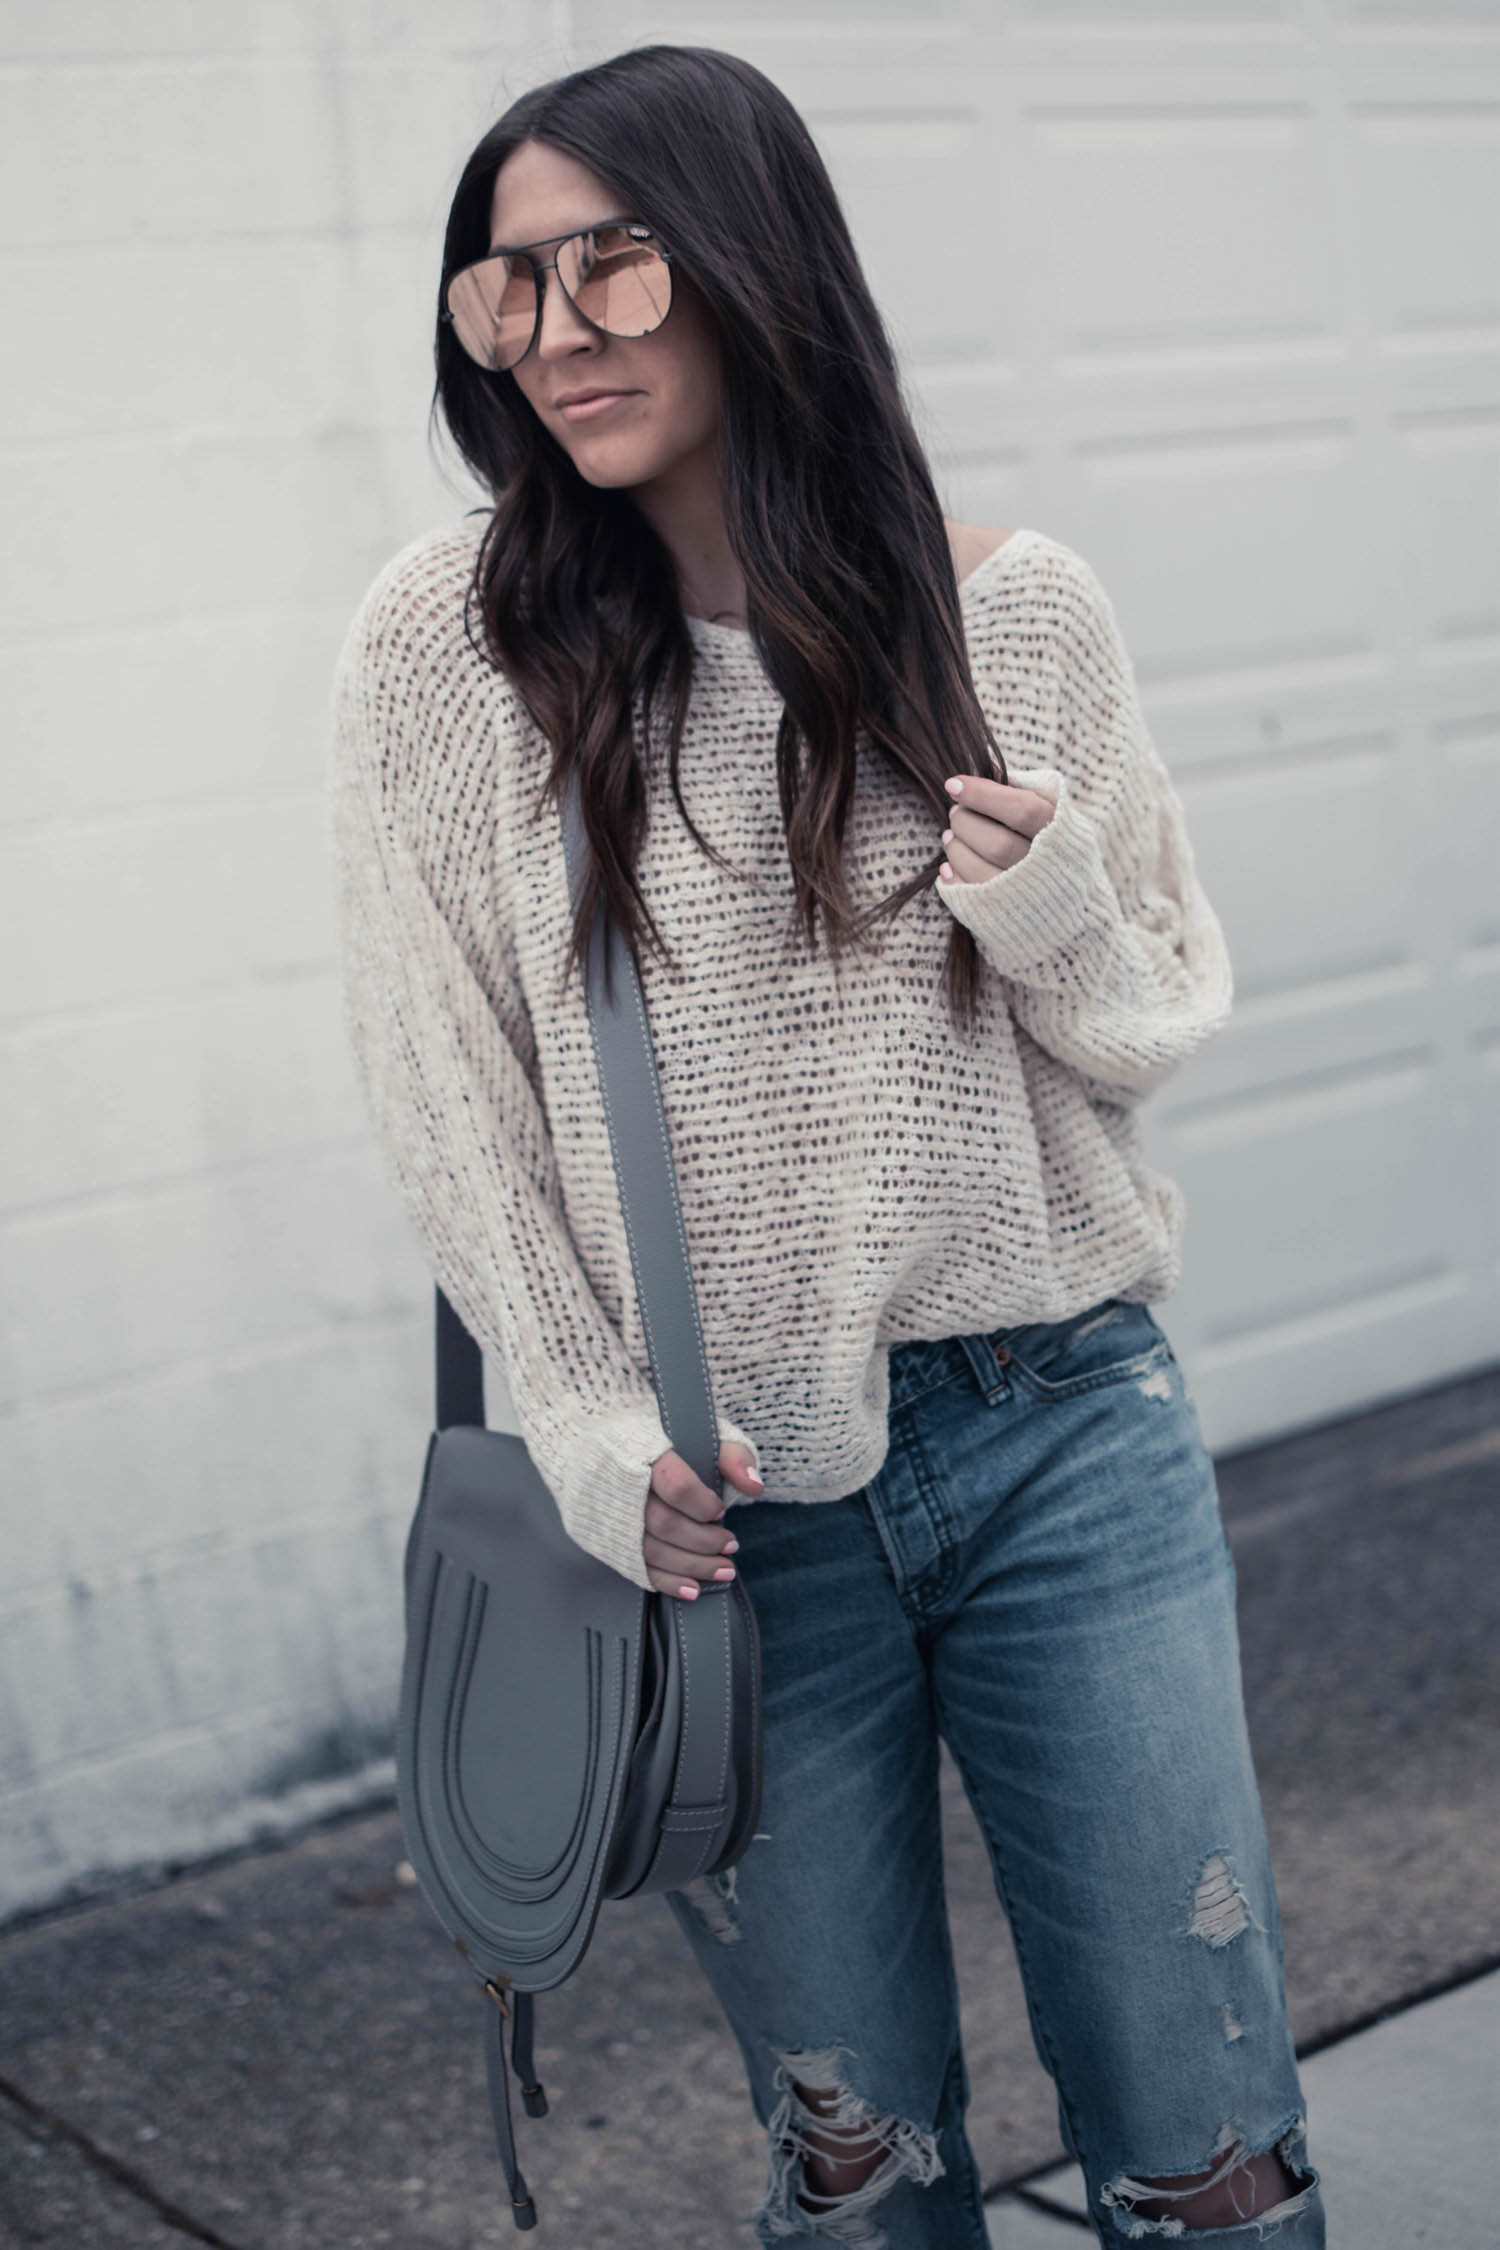 Styling Distressed Denim for the Spring Transition | Pine Barren Beauty | light weight sweater + distressed denim, Abercrombie denim, oversized sunglasses, spring outfit idea, spring transition outfit idea, spring outfit inspiration, Chloe bag